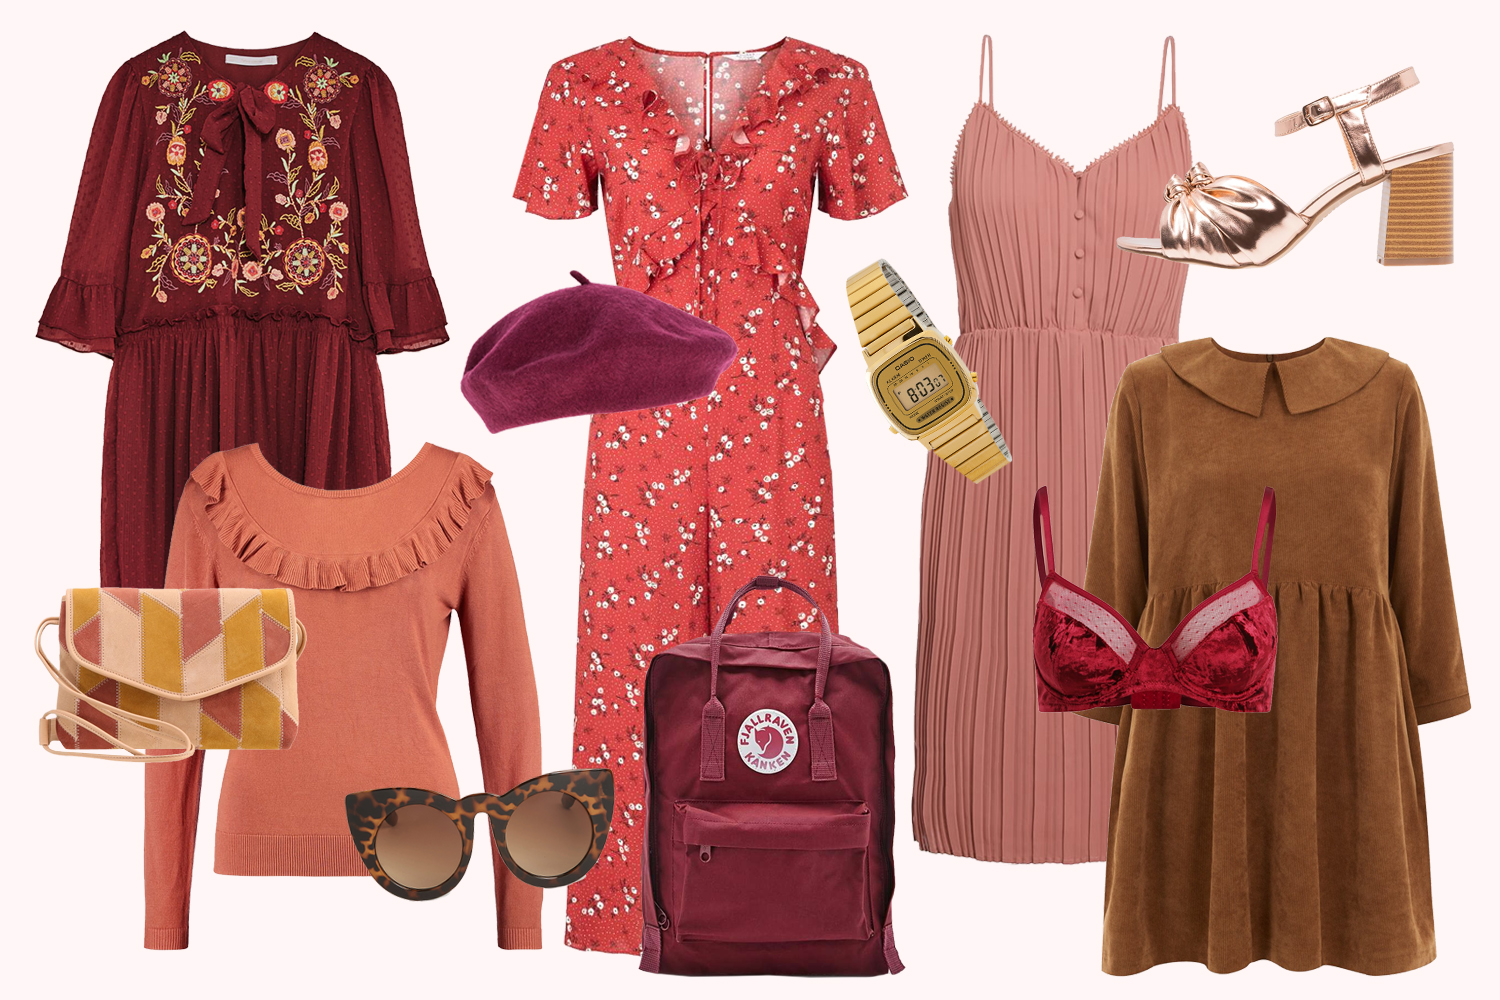 Retromantisch burgundy wishlist retro romantic look outfit dress fashion blog floral casio vjallraven kanken floral